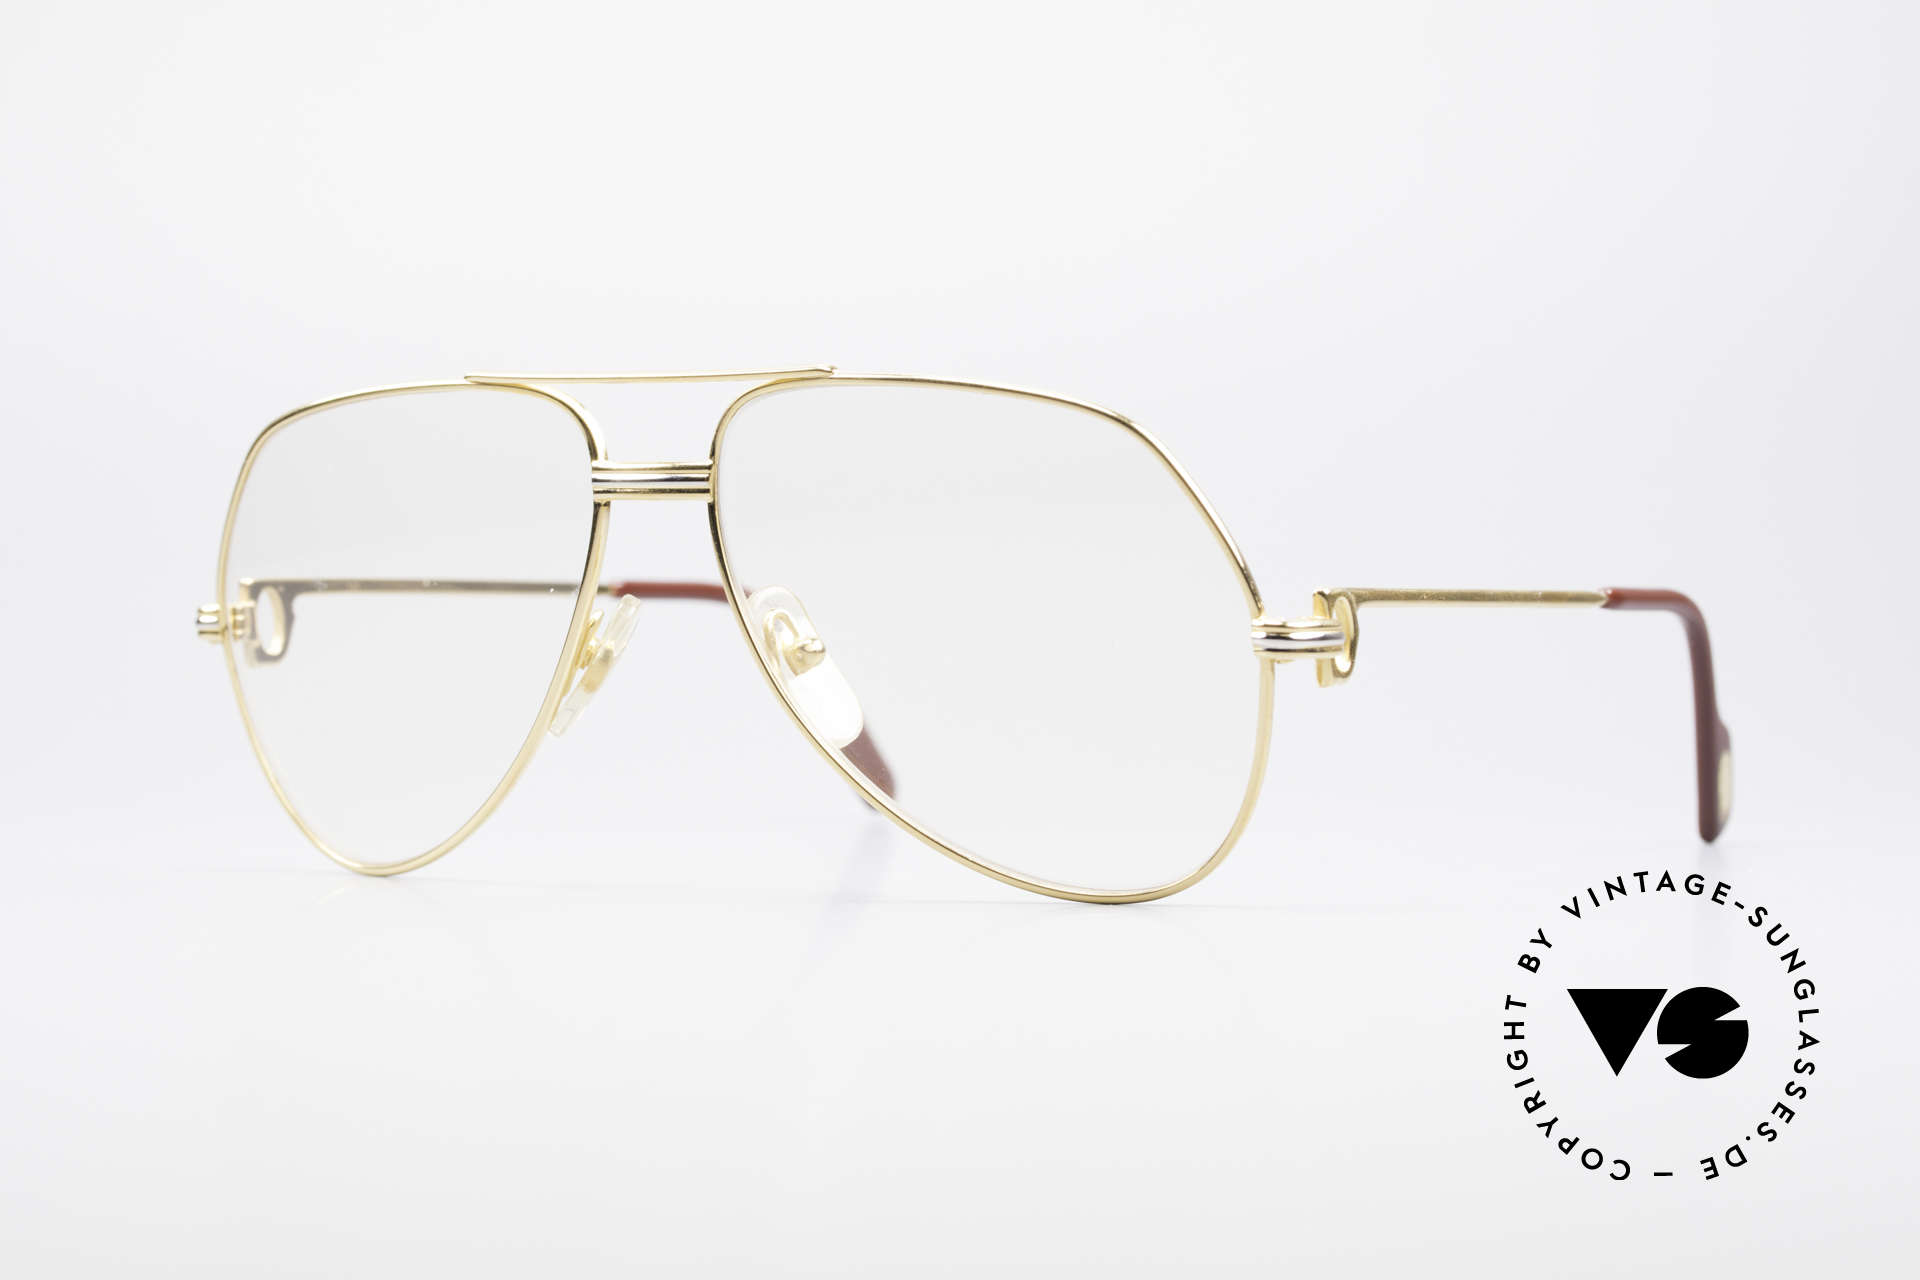 Cartier Vendome LC - M Changeable Cartier Lenses, Vendome = the most famous eyewear design by CARTIER, Made for Men and Women